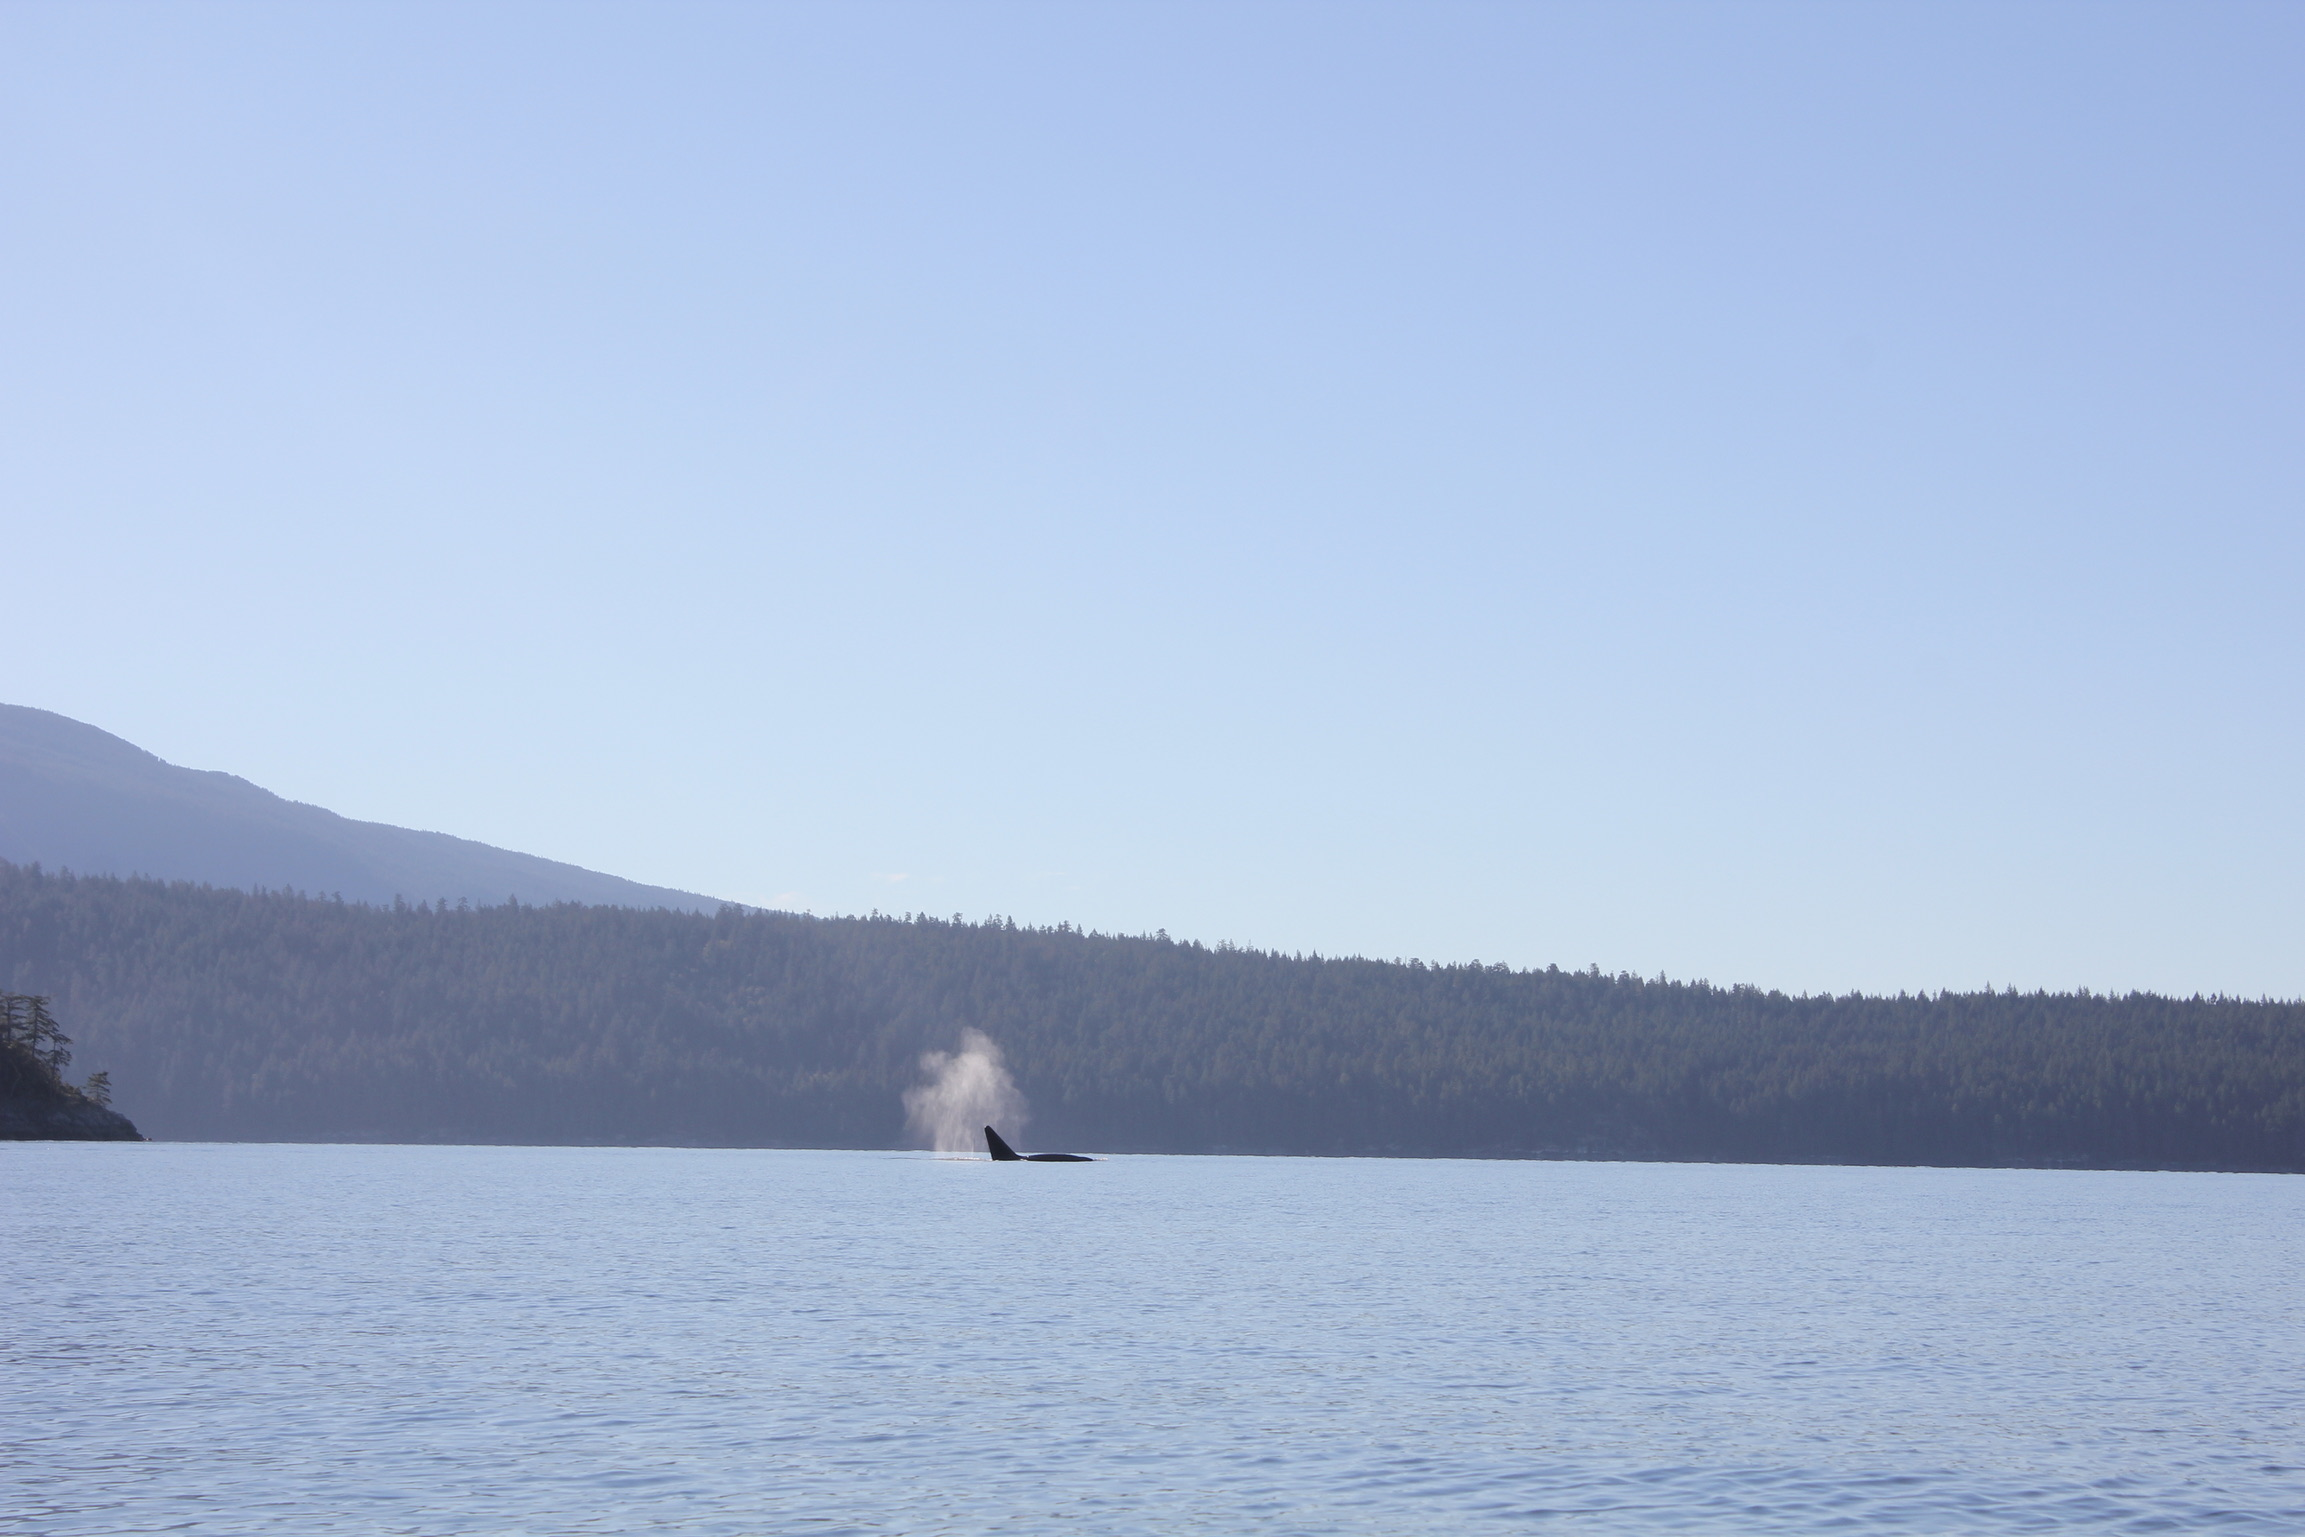 Orcas in the distance.